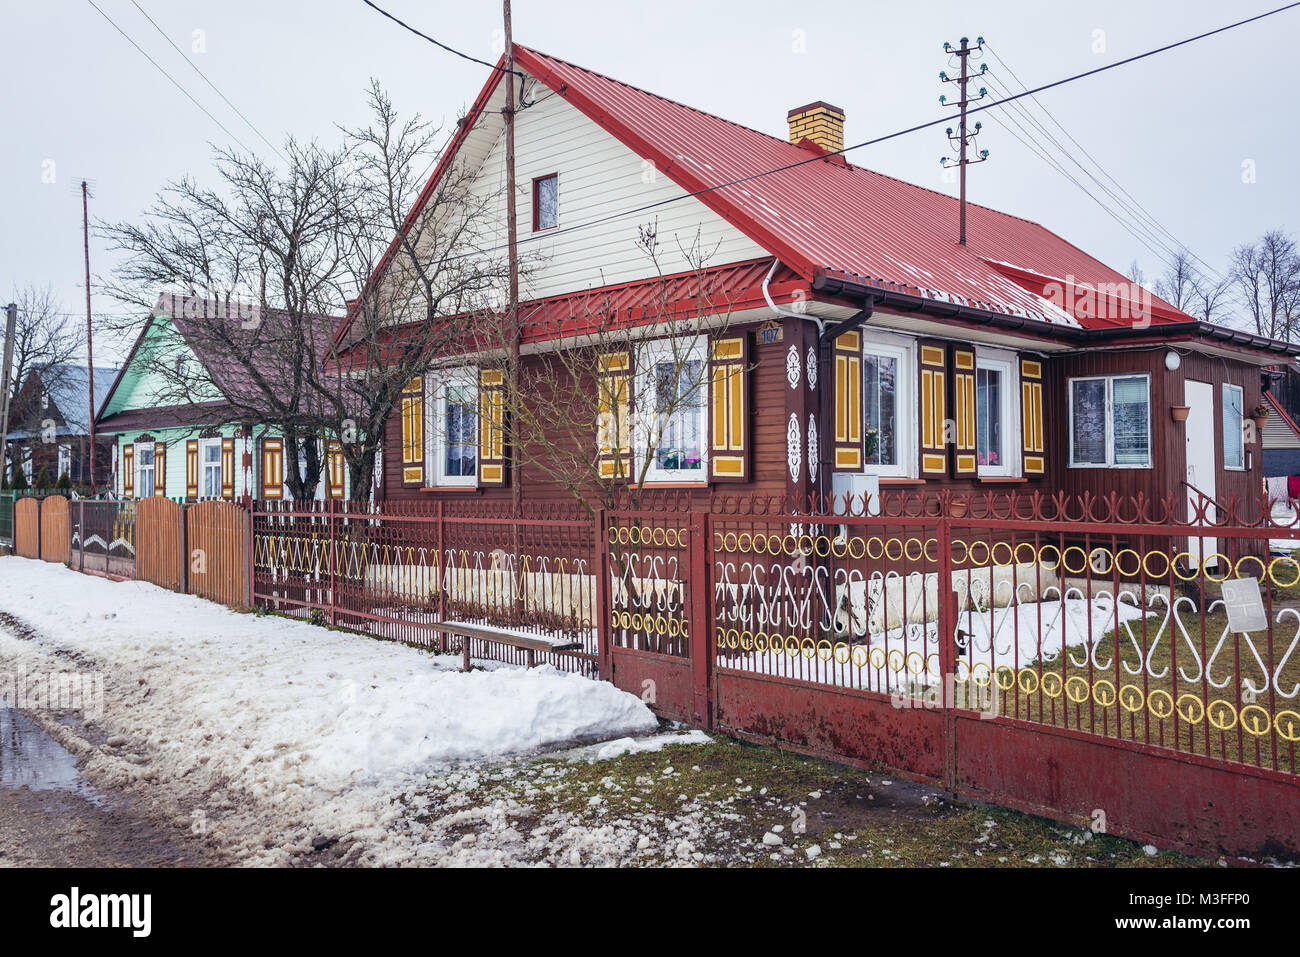 Wooden house in Soce village on so called Land of Open Shutters trail, famous for traditional architecture in Podlaskie - Stock Image